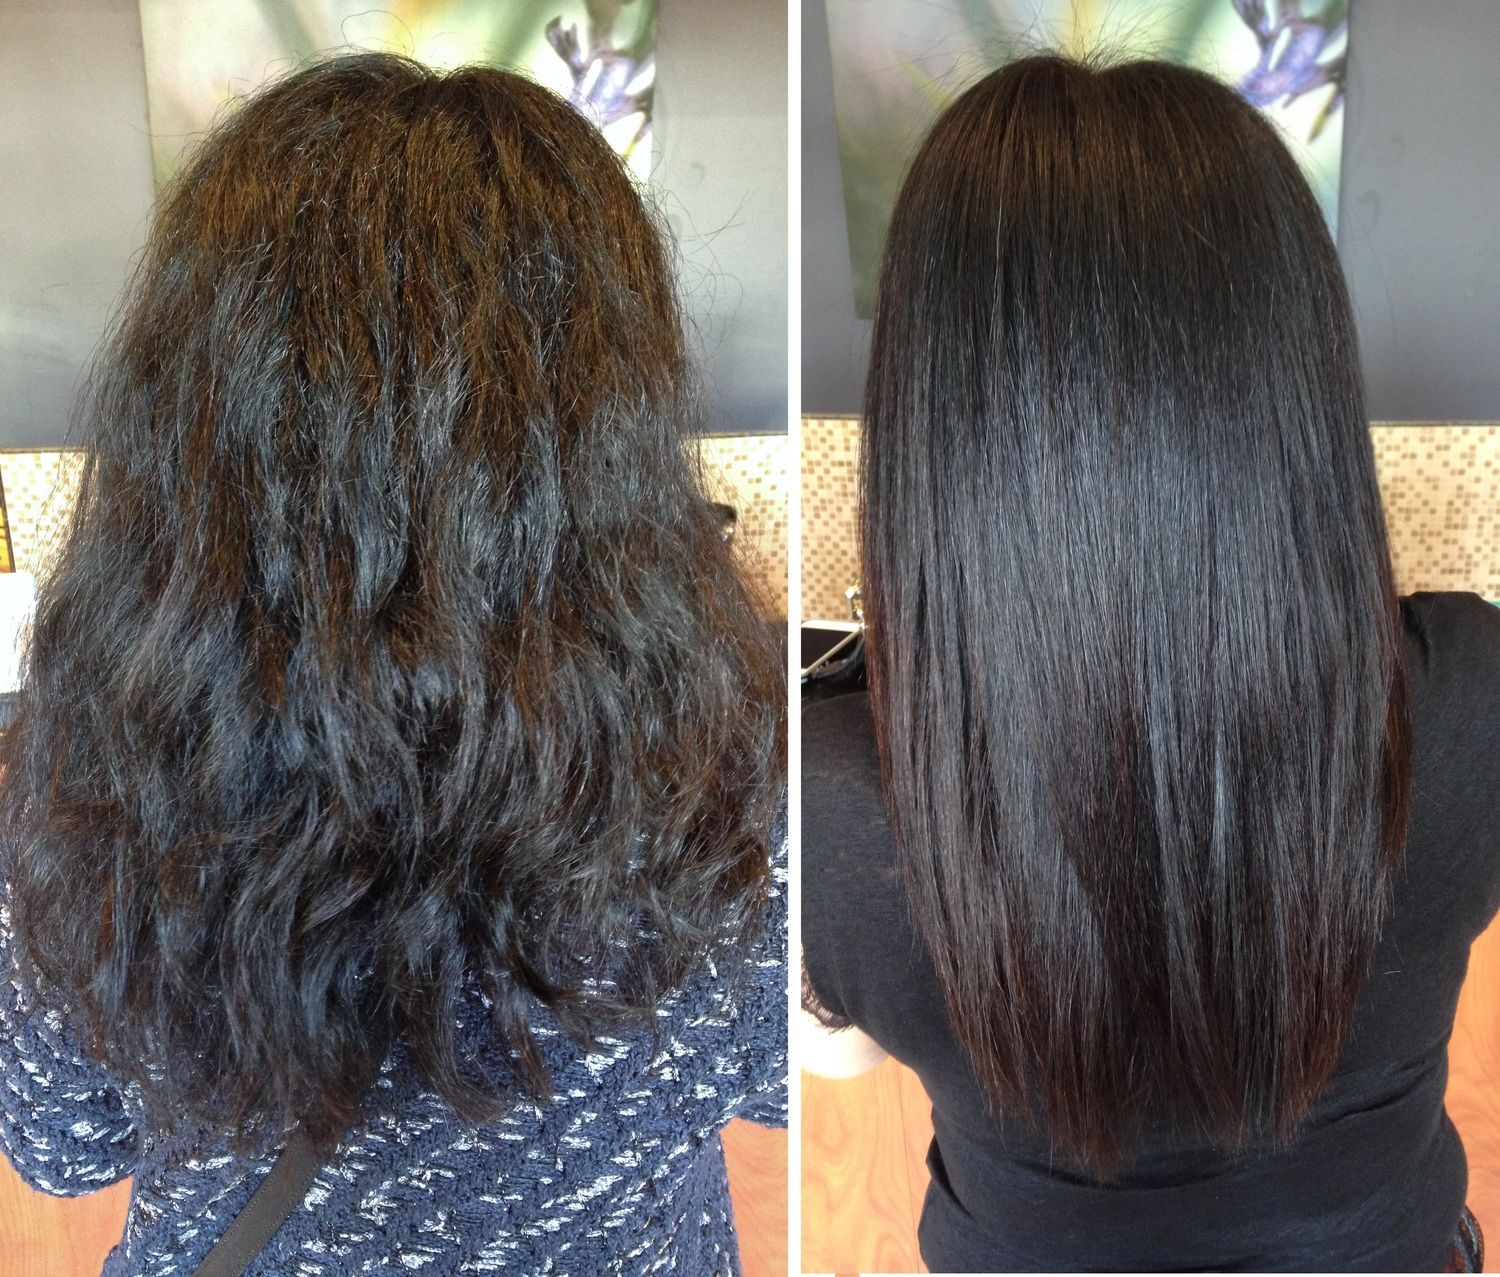 Keratin Before & After Our Work! Only at Salon